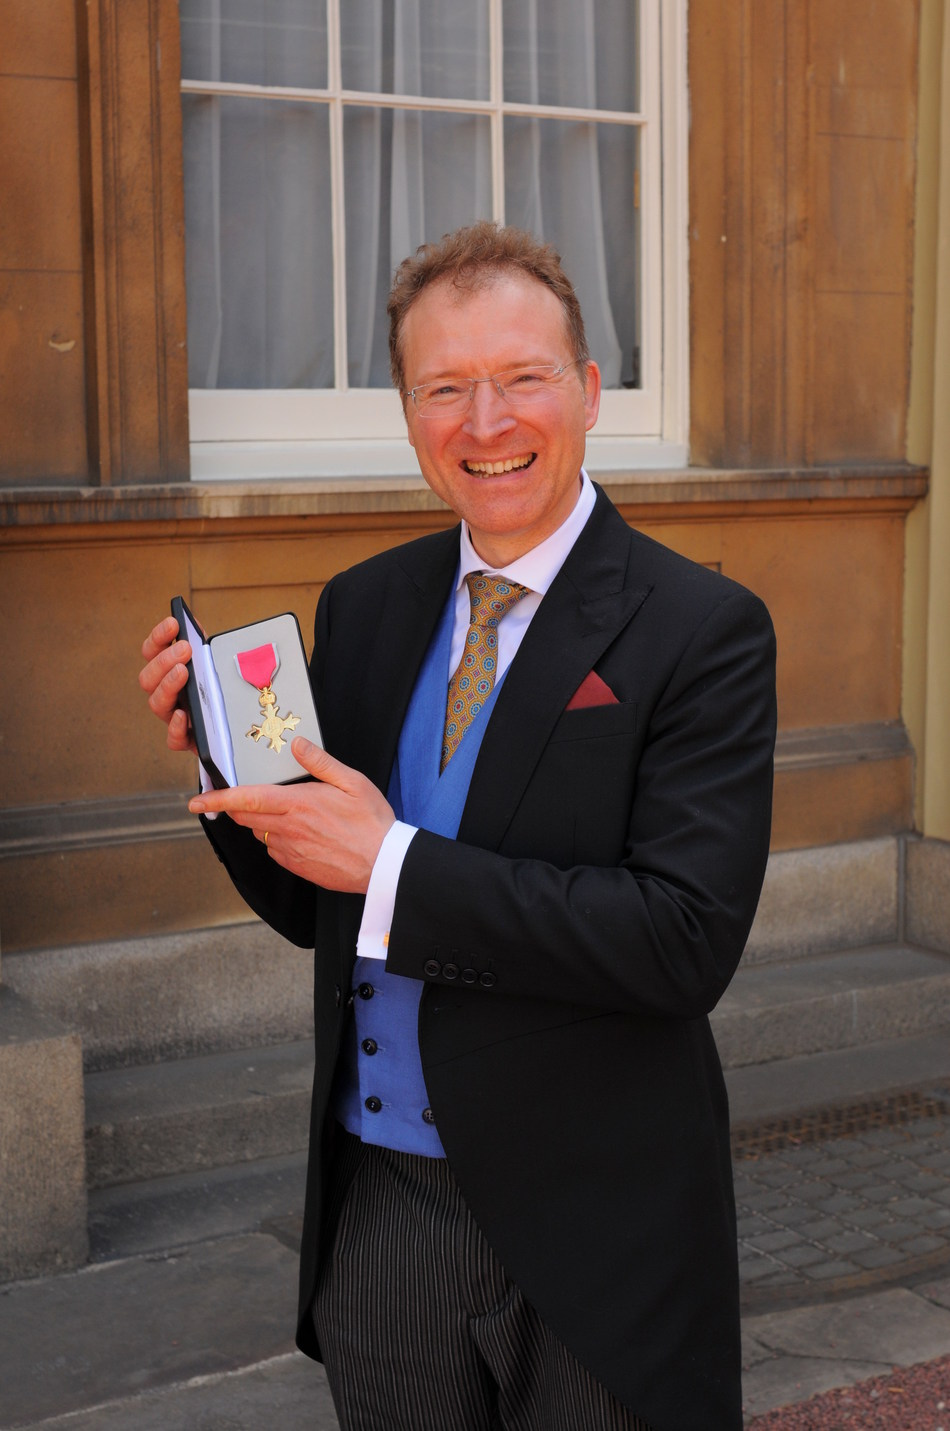 Dr Richard Wilson Receives OBE for Services to the Video Games Industry at Buckingham Palace (PRNewsfoto/TIGA)